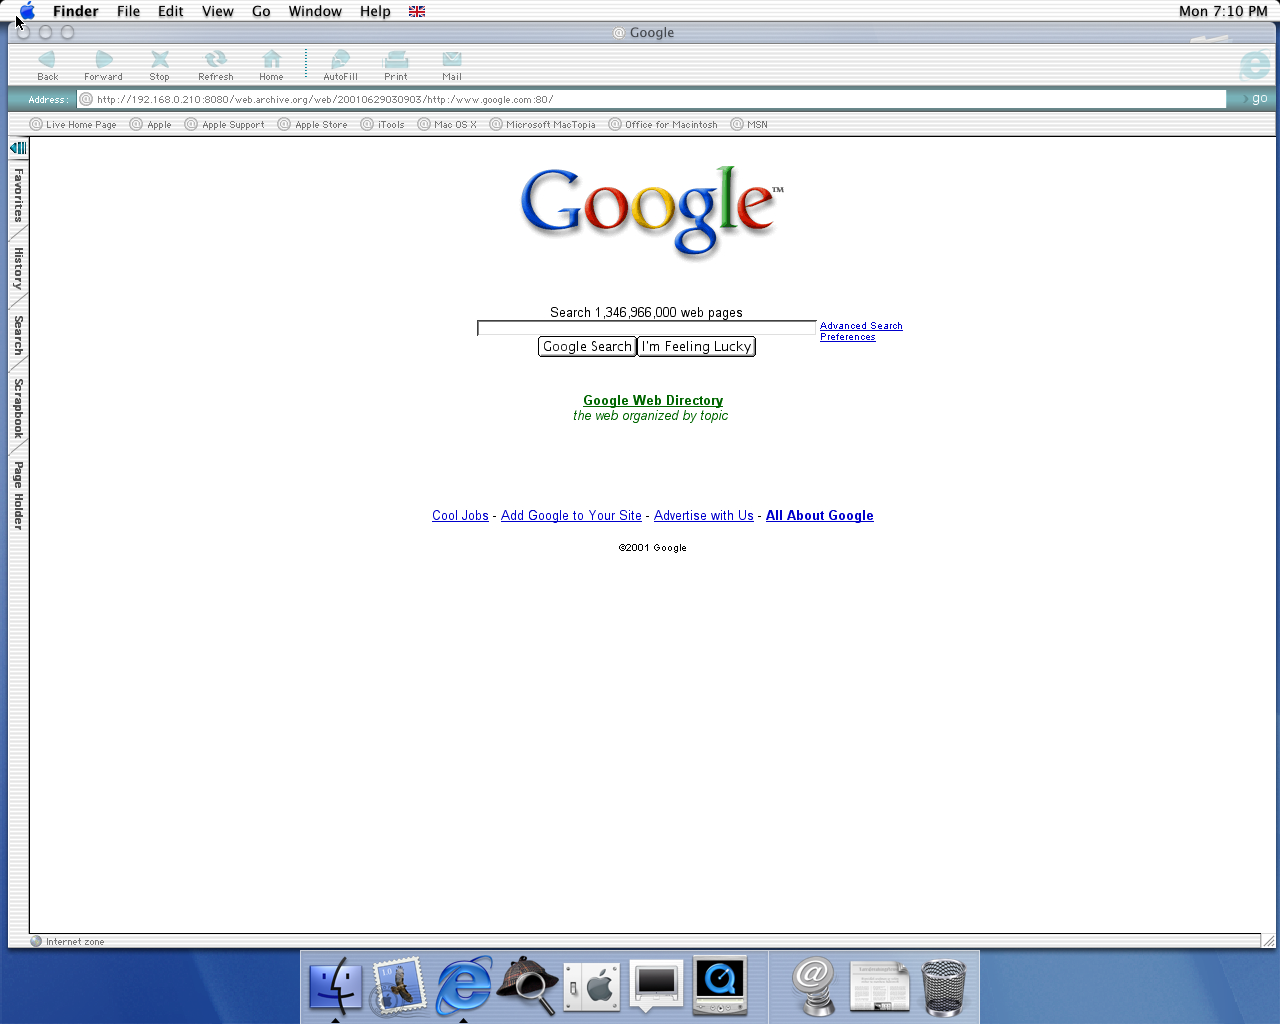 OS X 10.0 PPC with Microsoft Internet Explorer 5.1 for Mac Preview displaying a page from Google.com archived at June 29, 2001 at 03:09:03